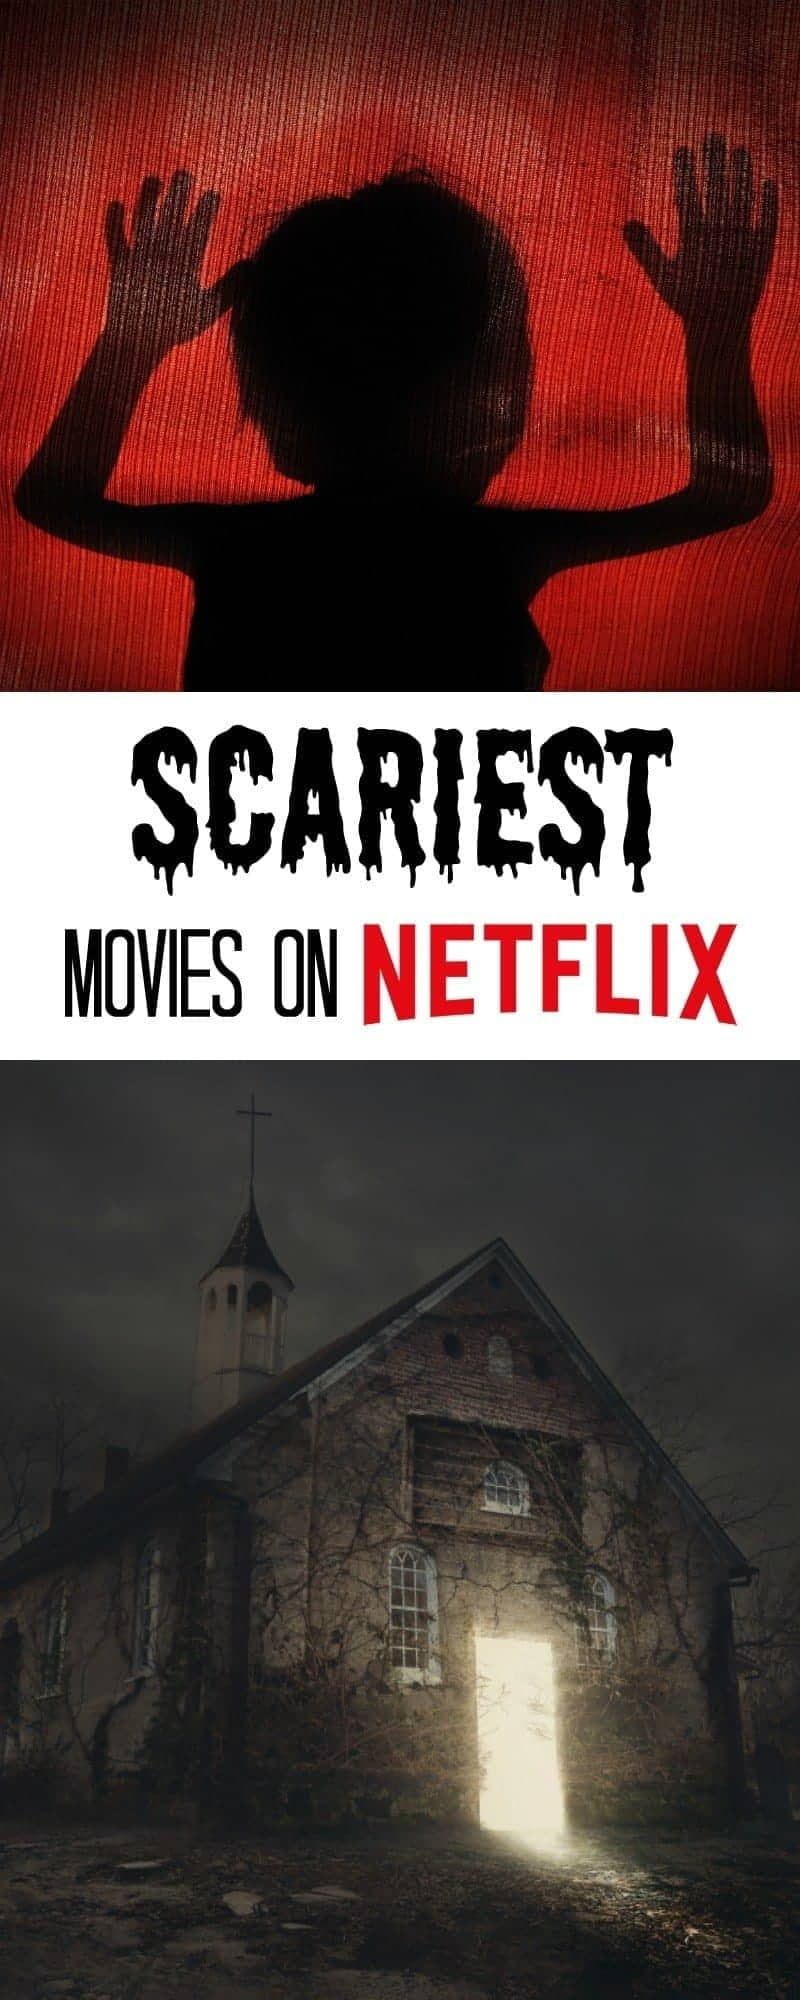 Get ready for Halloween with some of the Scariest Movies on Netflix. Host a viewing party or just curl up alone and try not to scream!